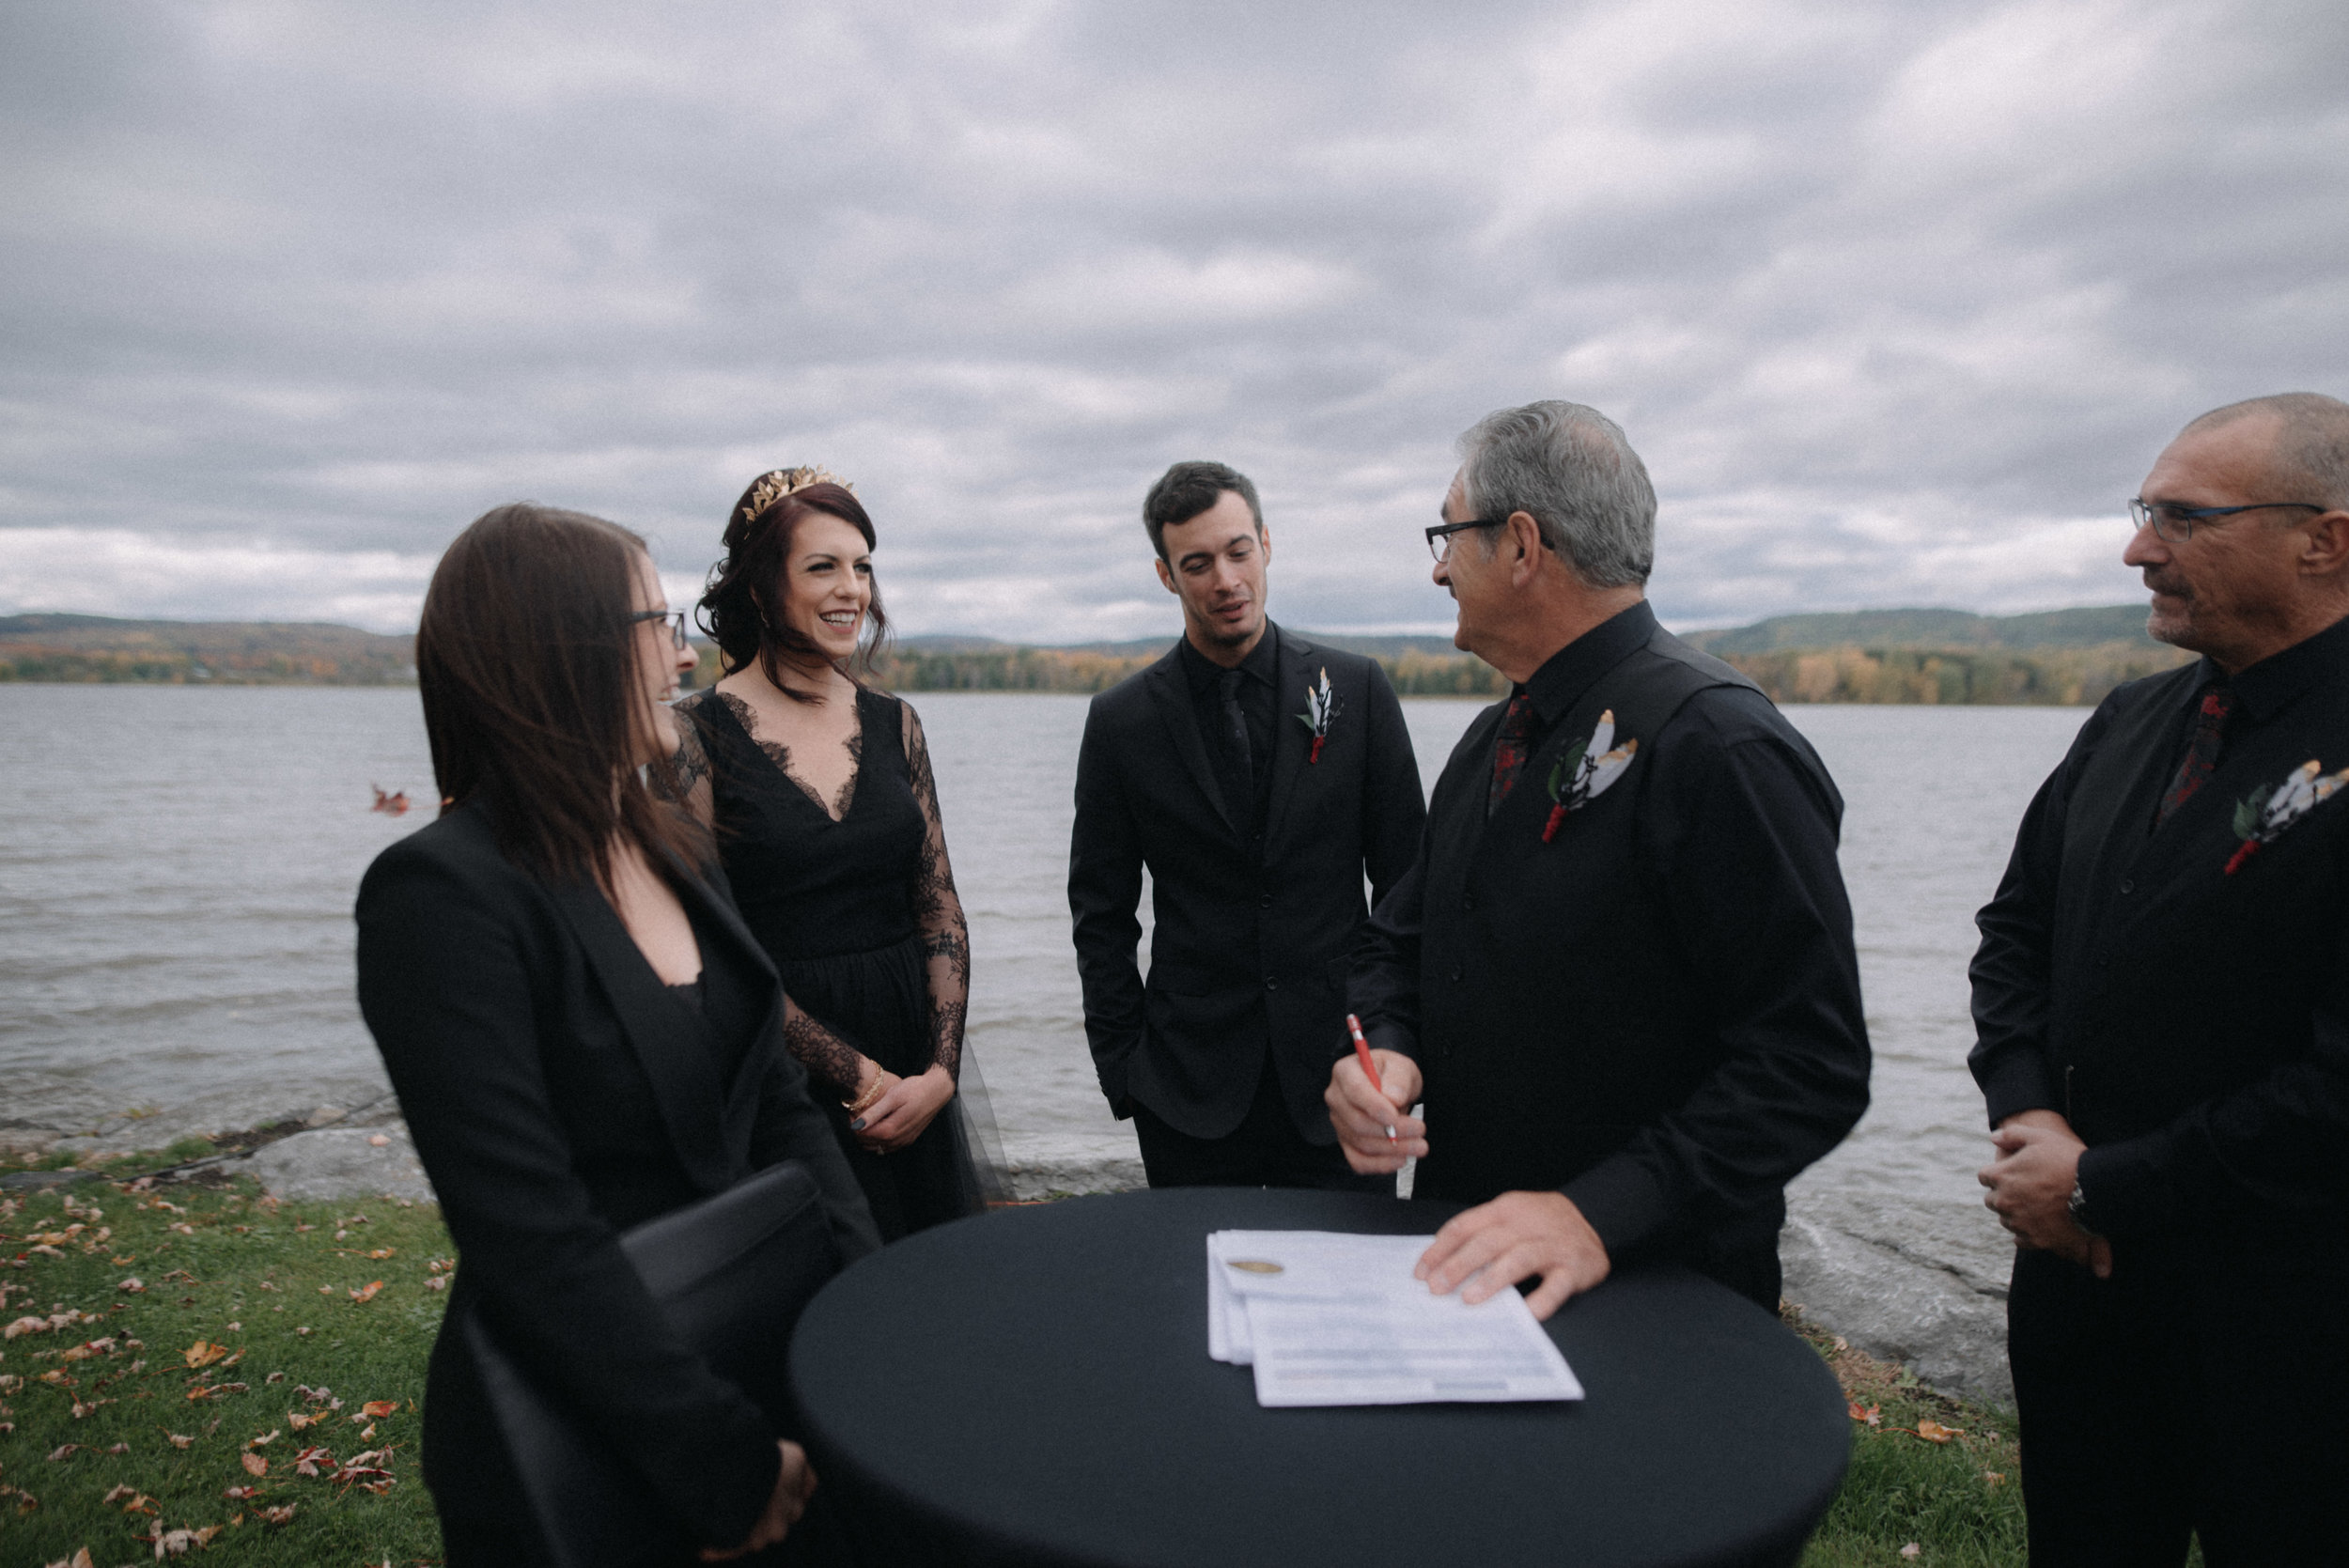 photographe_gatineau_mariage_ottawa_photographer_wedding_natasha_liard_photo_documentary_candid_lifestyle_intimate_intime (10).jpg